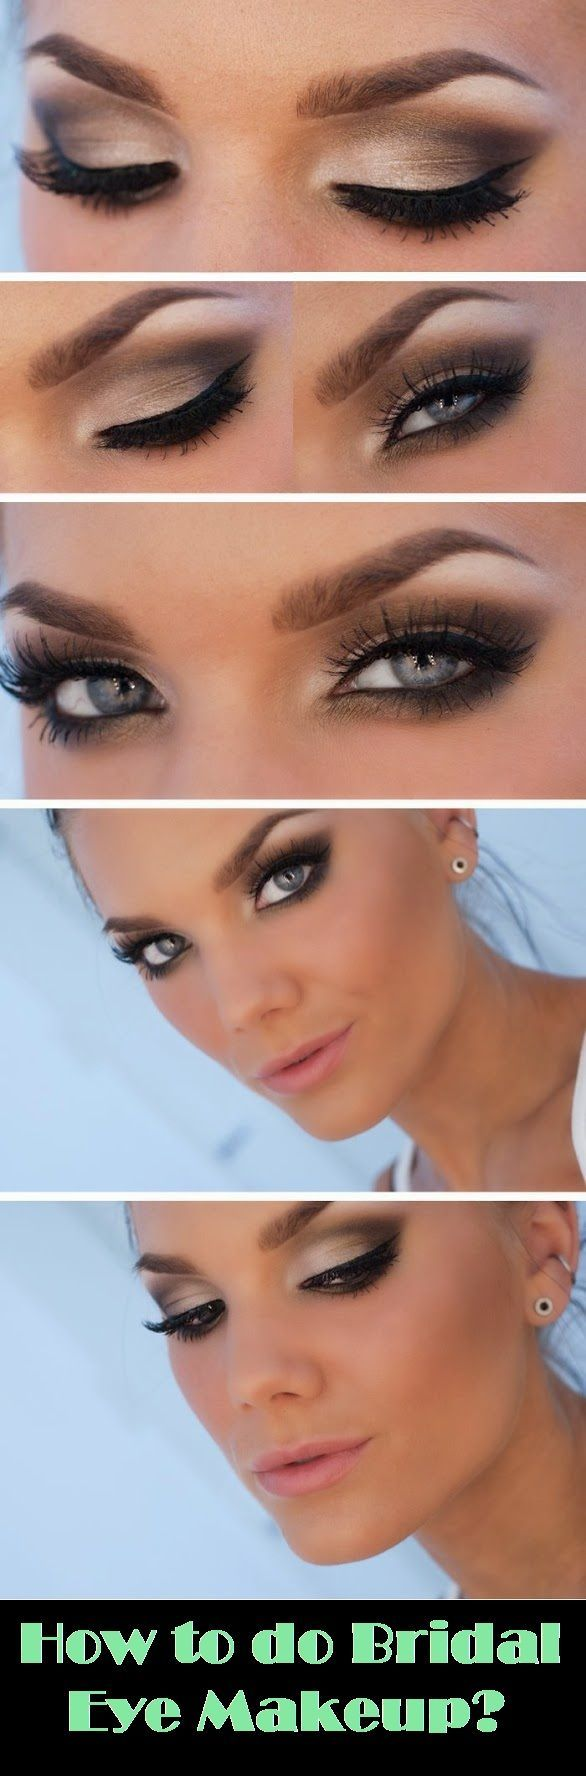 How to do bridal eye makeup ? Please visit our website @ rainbowloomsale.com...